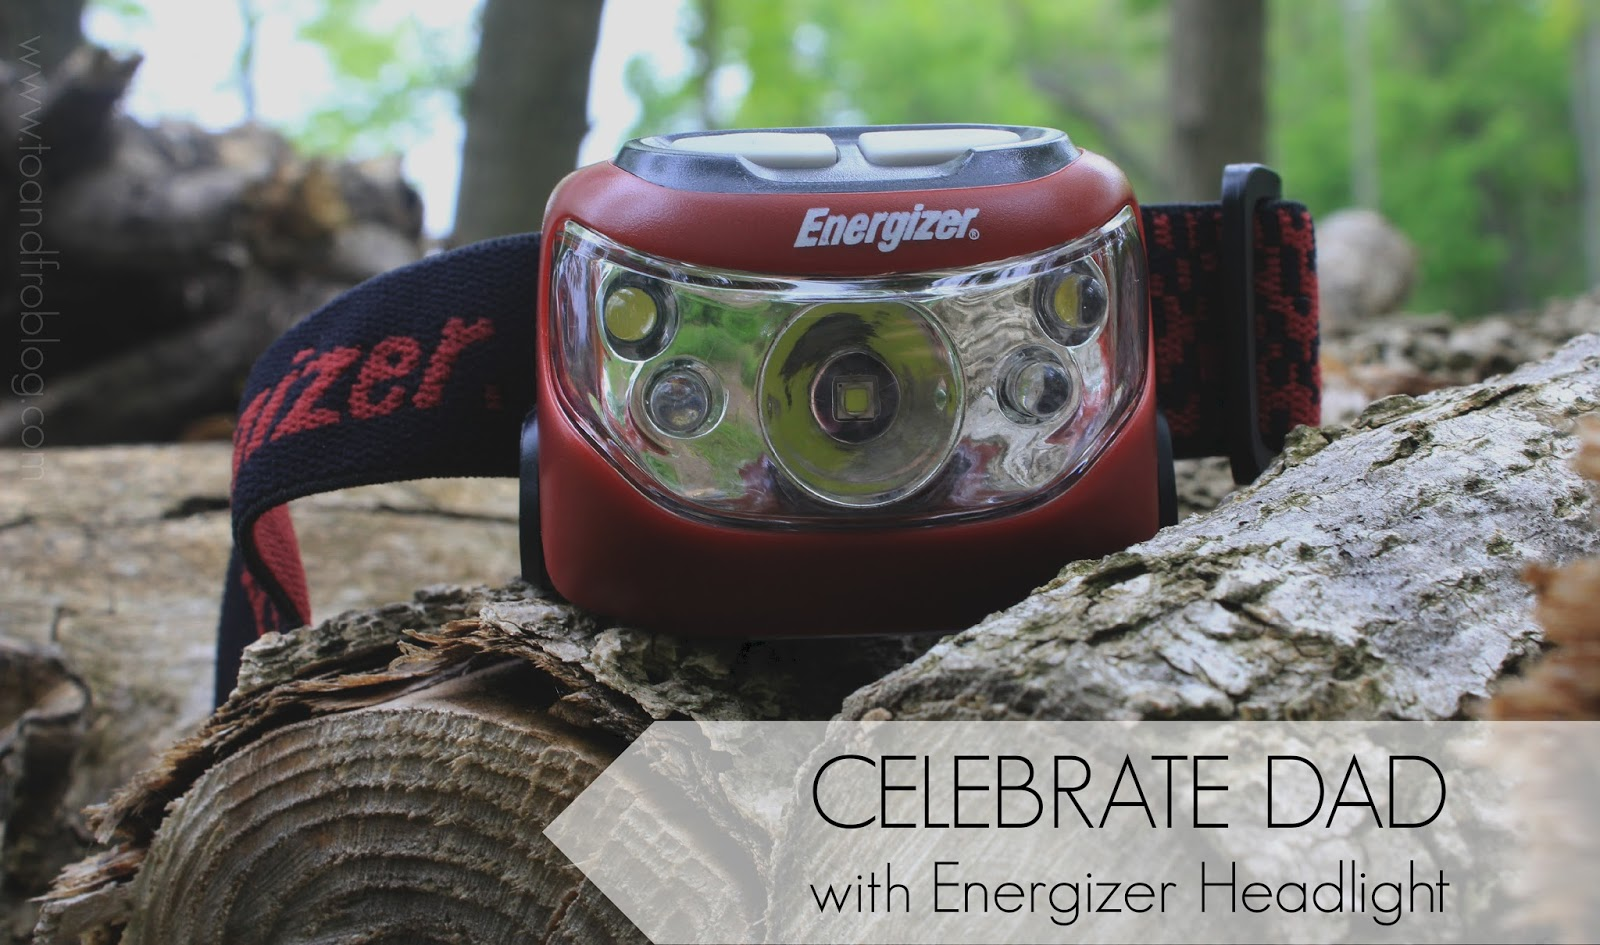 energizer headlight